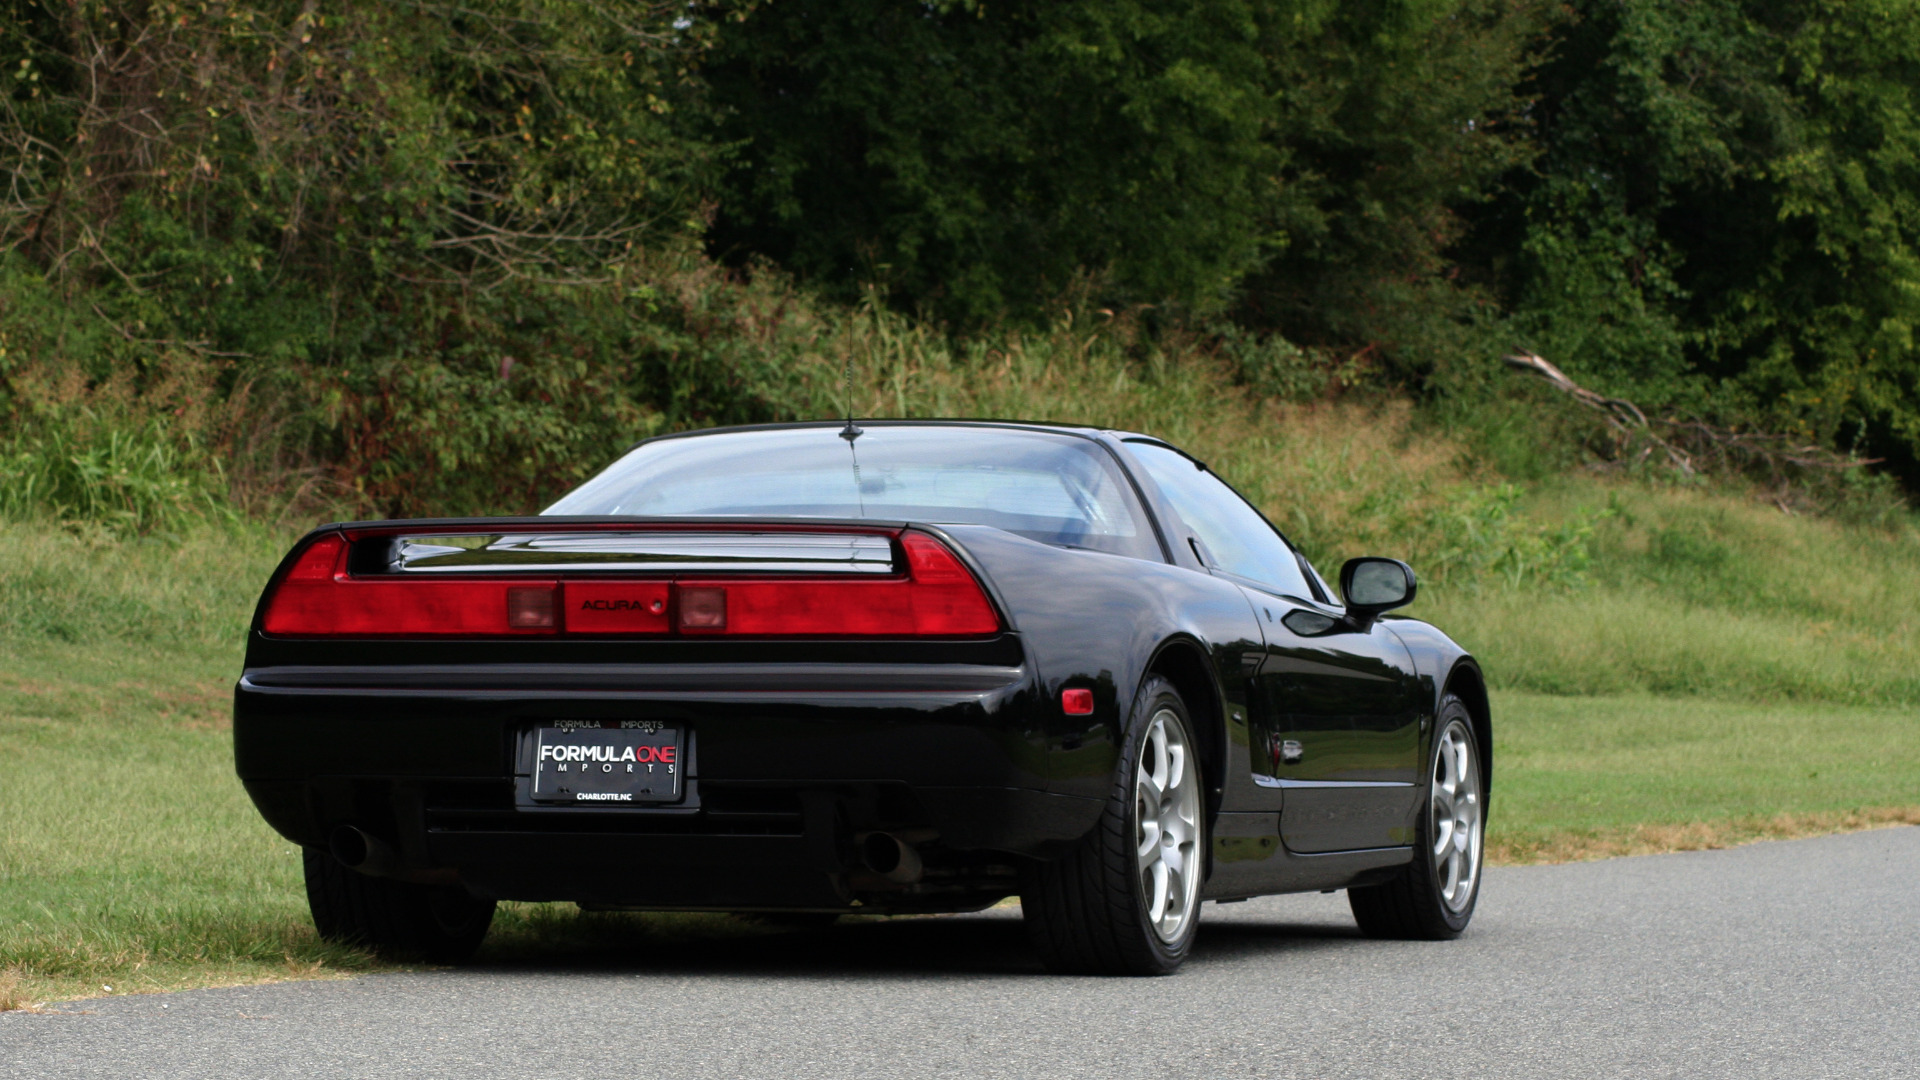 Used 1995 Acura NSX OPEN TOP / 5-SPD MAN / LOW MILES / SUPER CLEAN for sale Sold at Formula Imports in Charlotte NC 28227 78